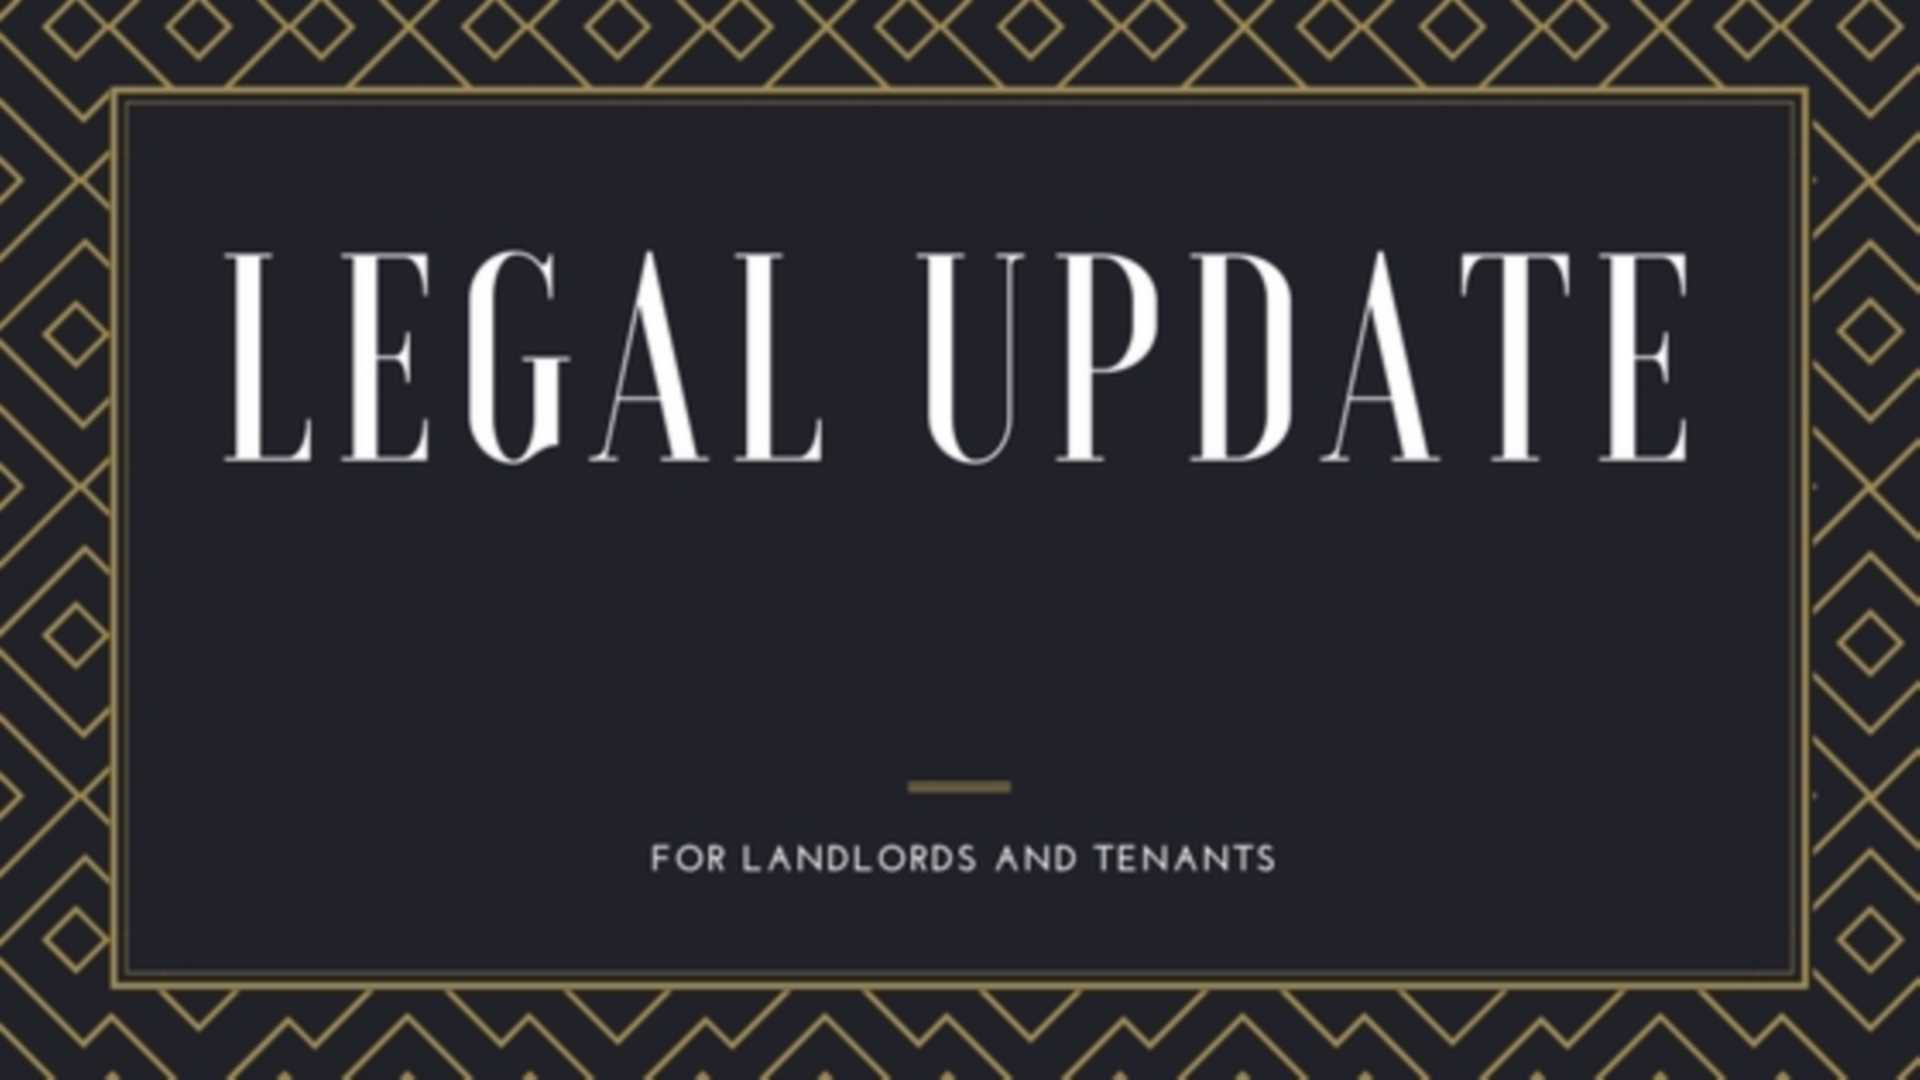 Important court ruling for landlords